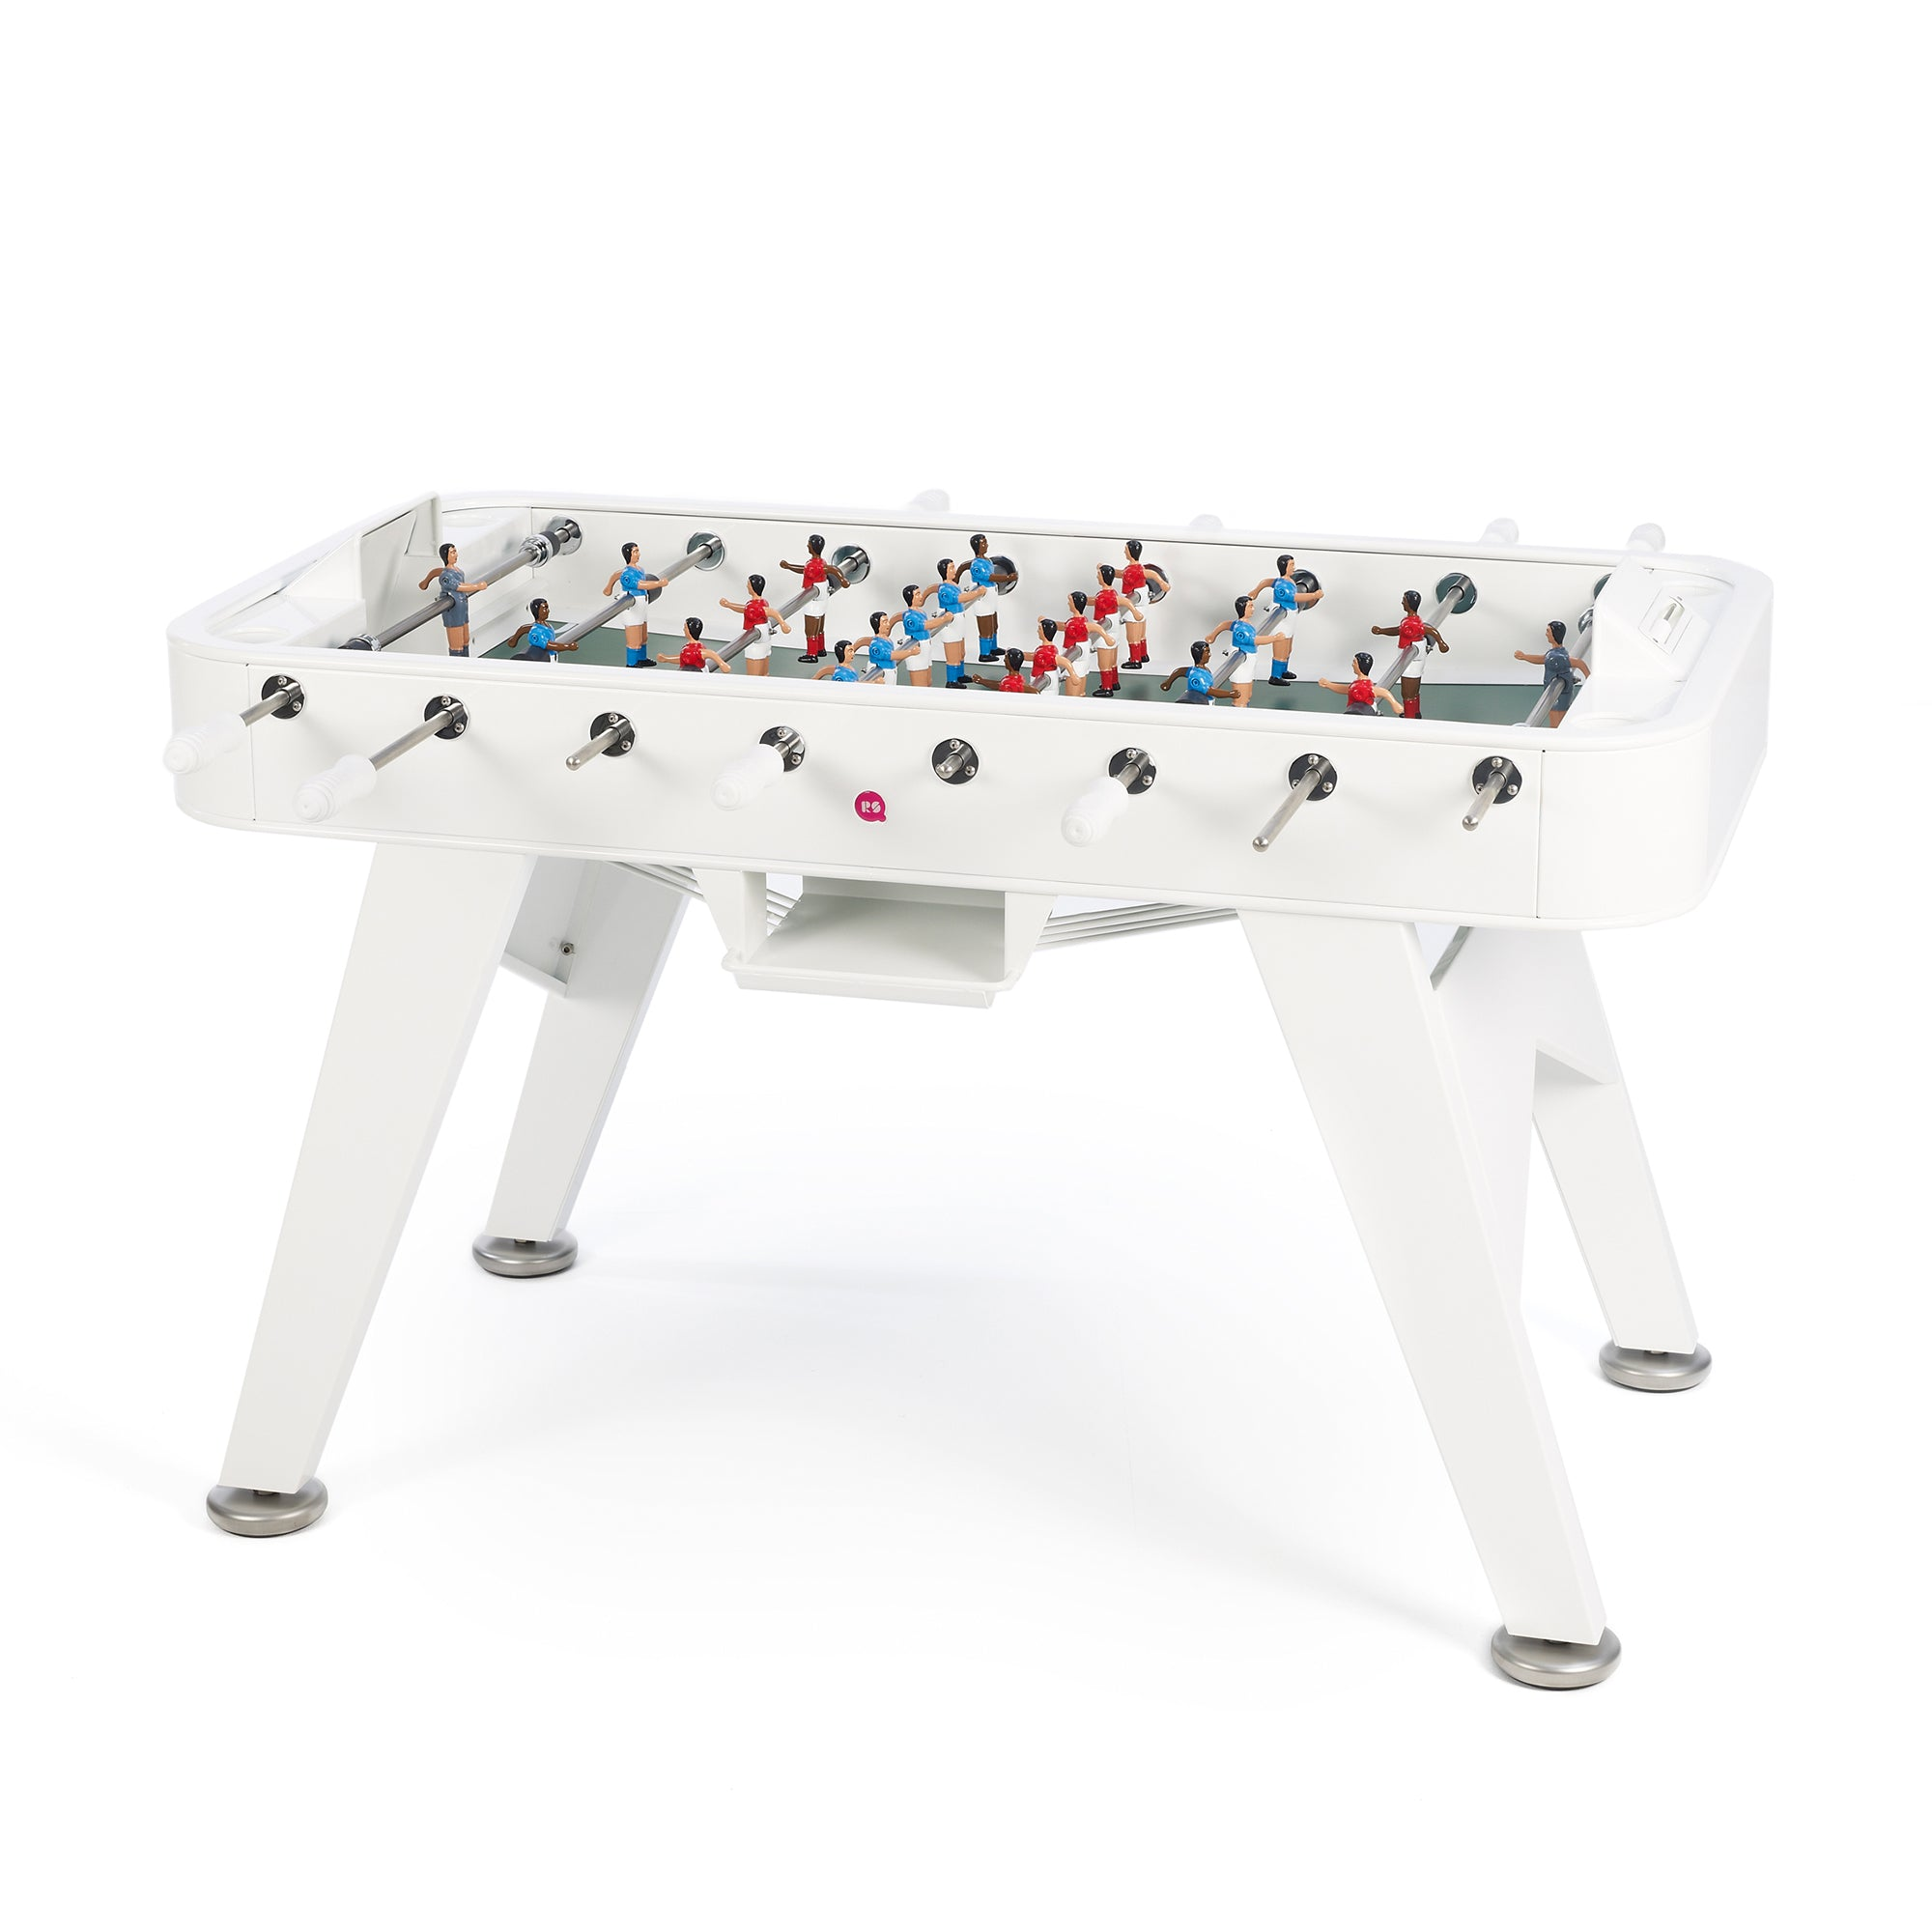 RS2 Foosball Table Outdoor: White